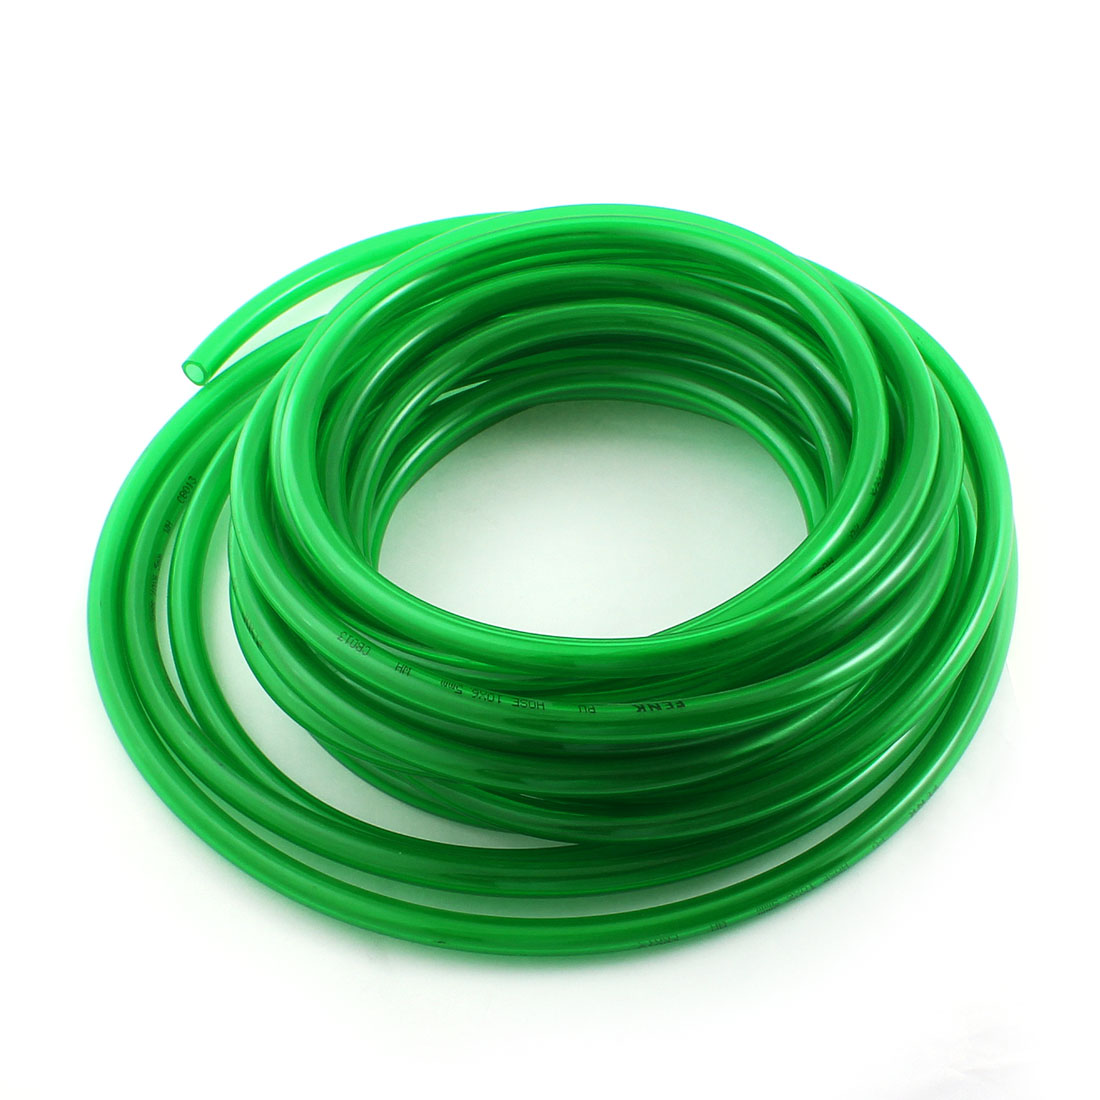 10mmx6.5mm Clear Green PU Hose Tube Air Pneumatic Quick Fitting 10m Length